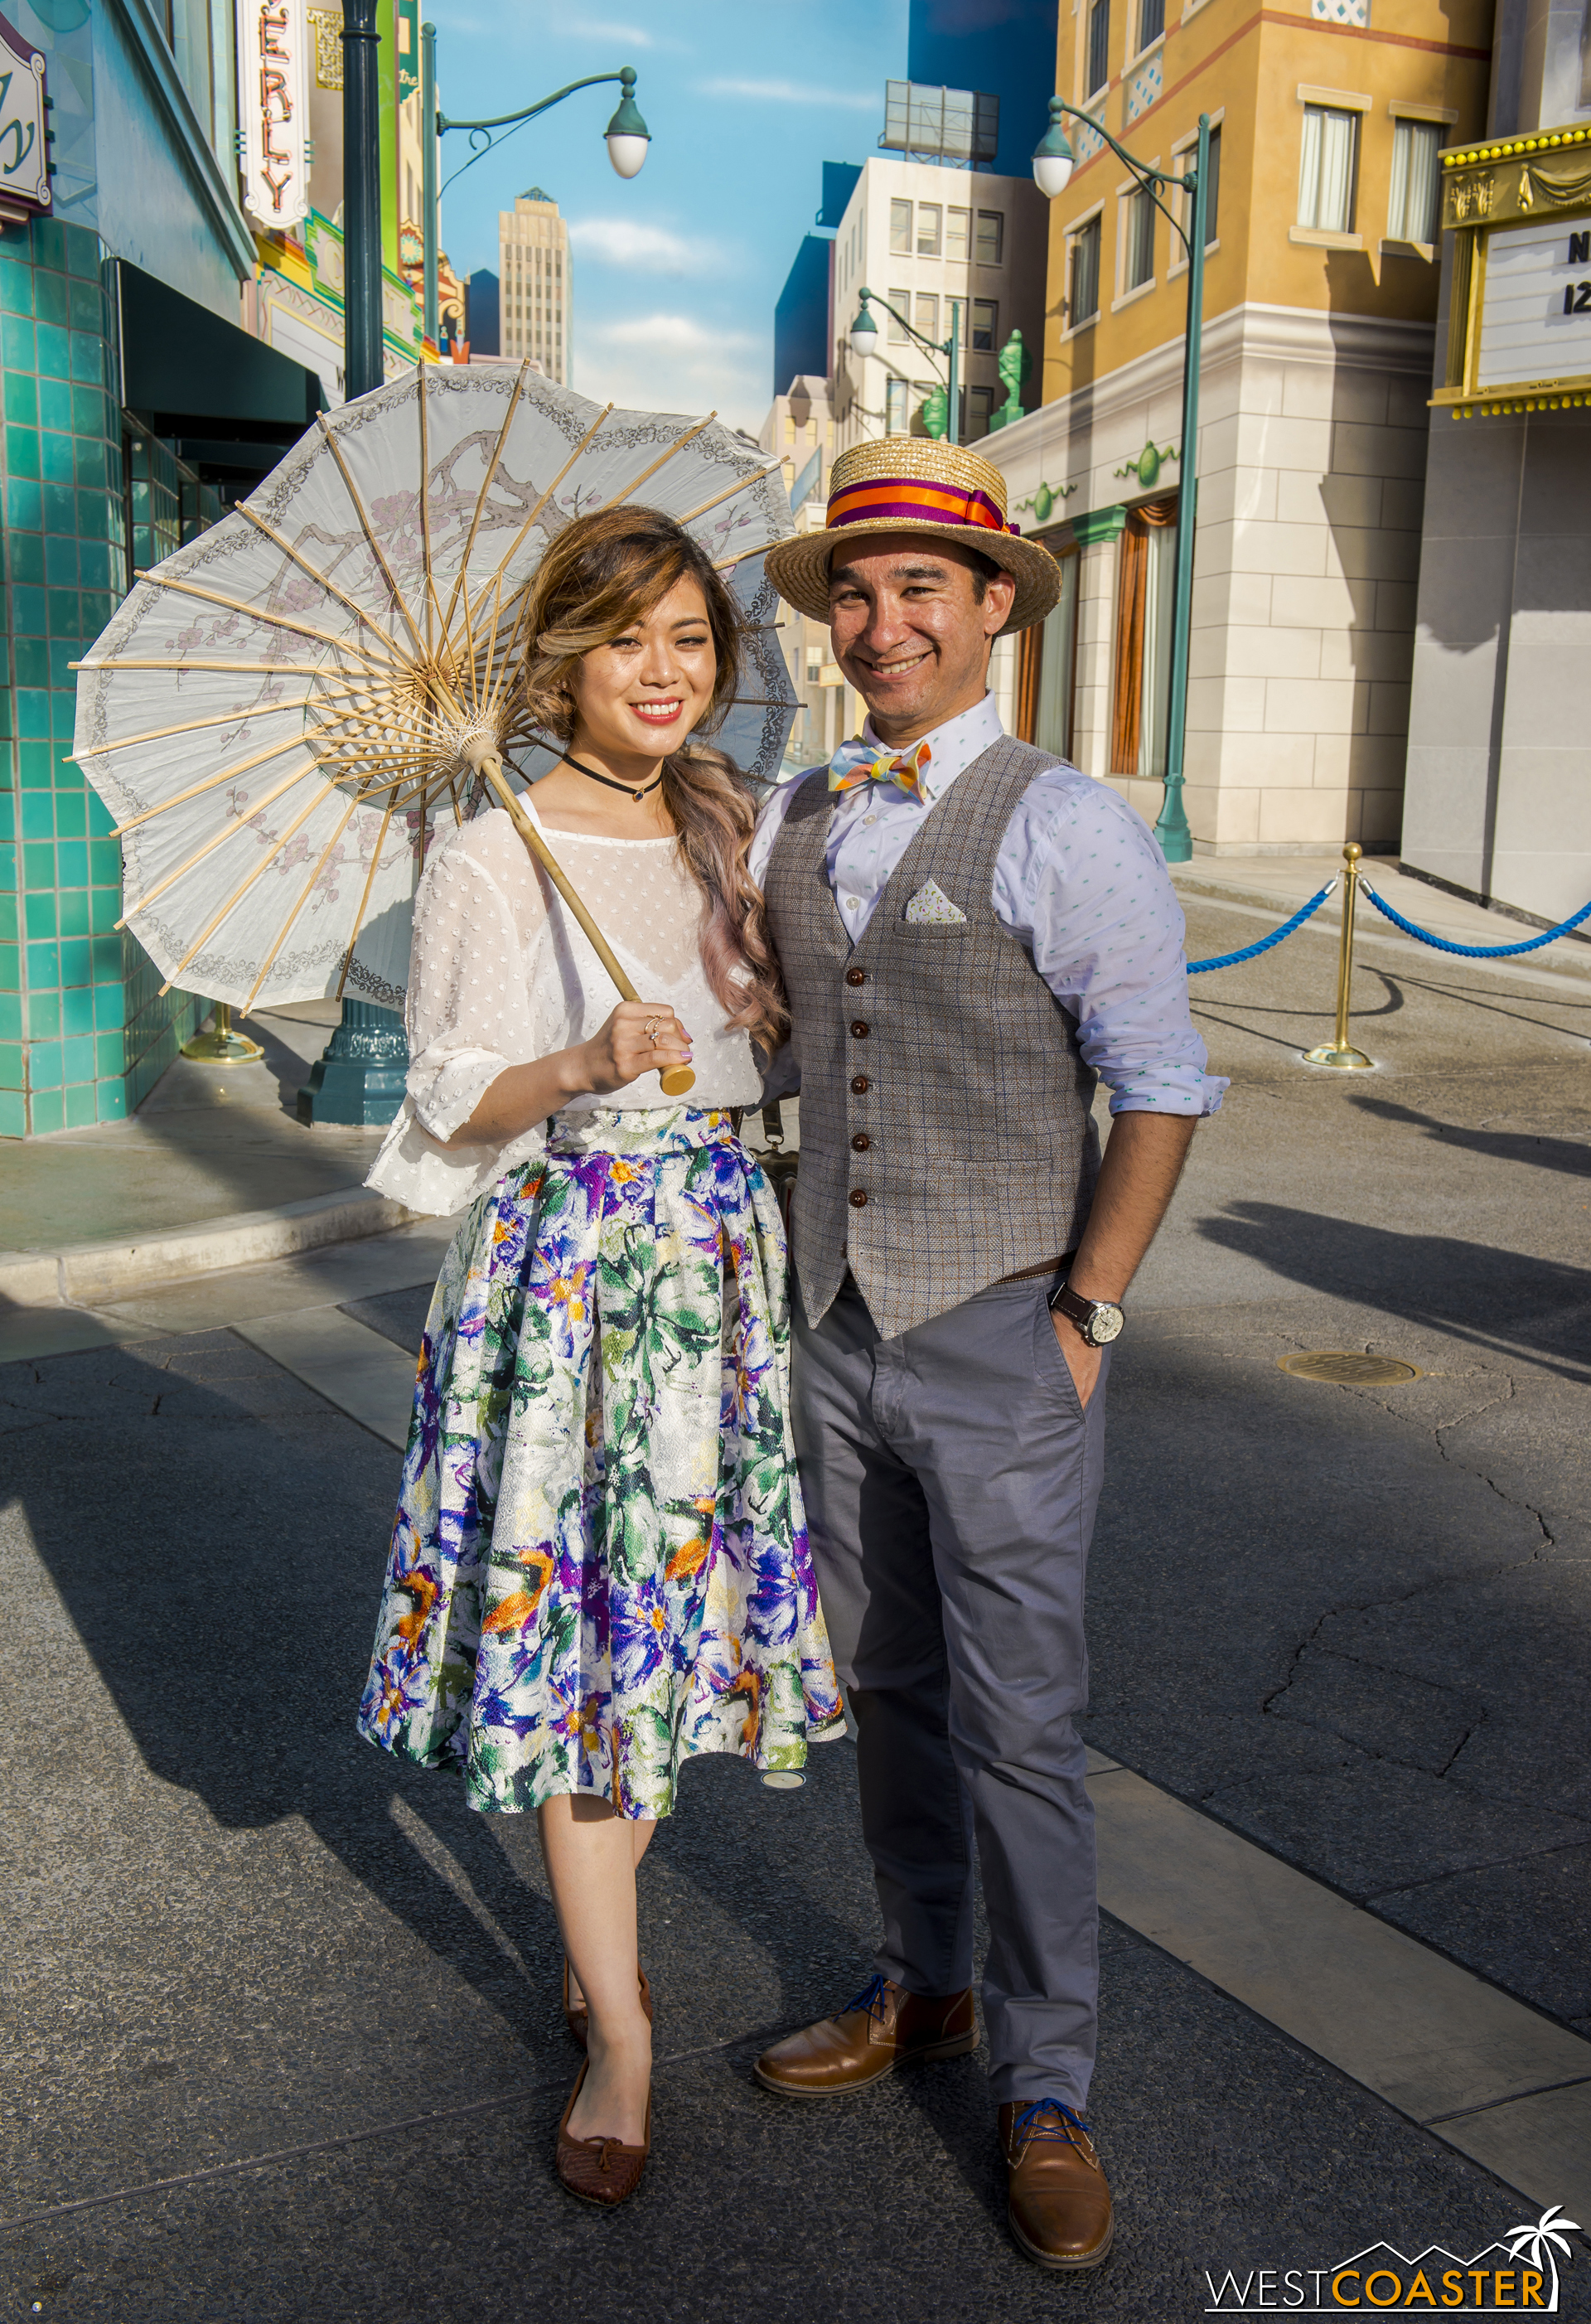 Dapper Day attracts enough people that one can run into familiar faces from past Dapper Days, as I did with this couple.